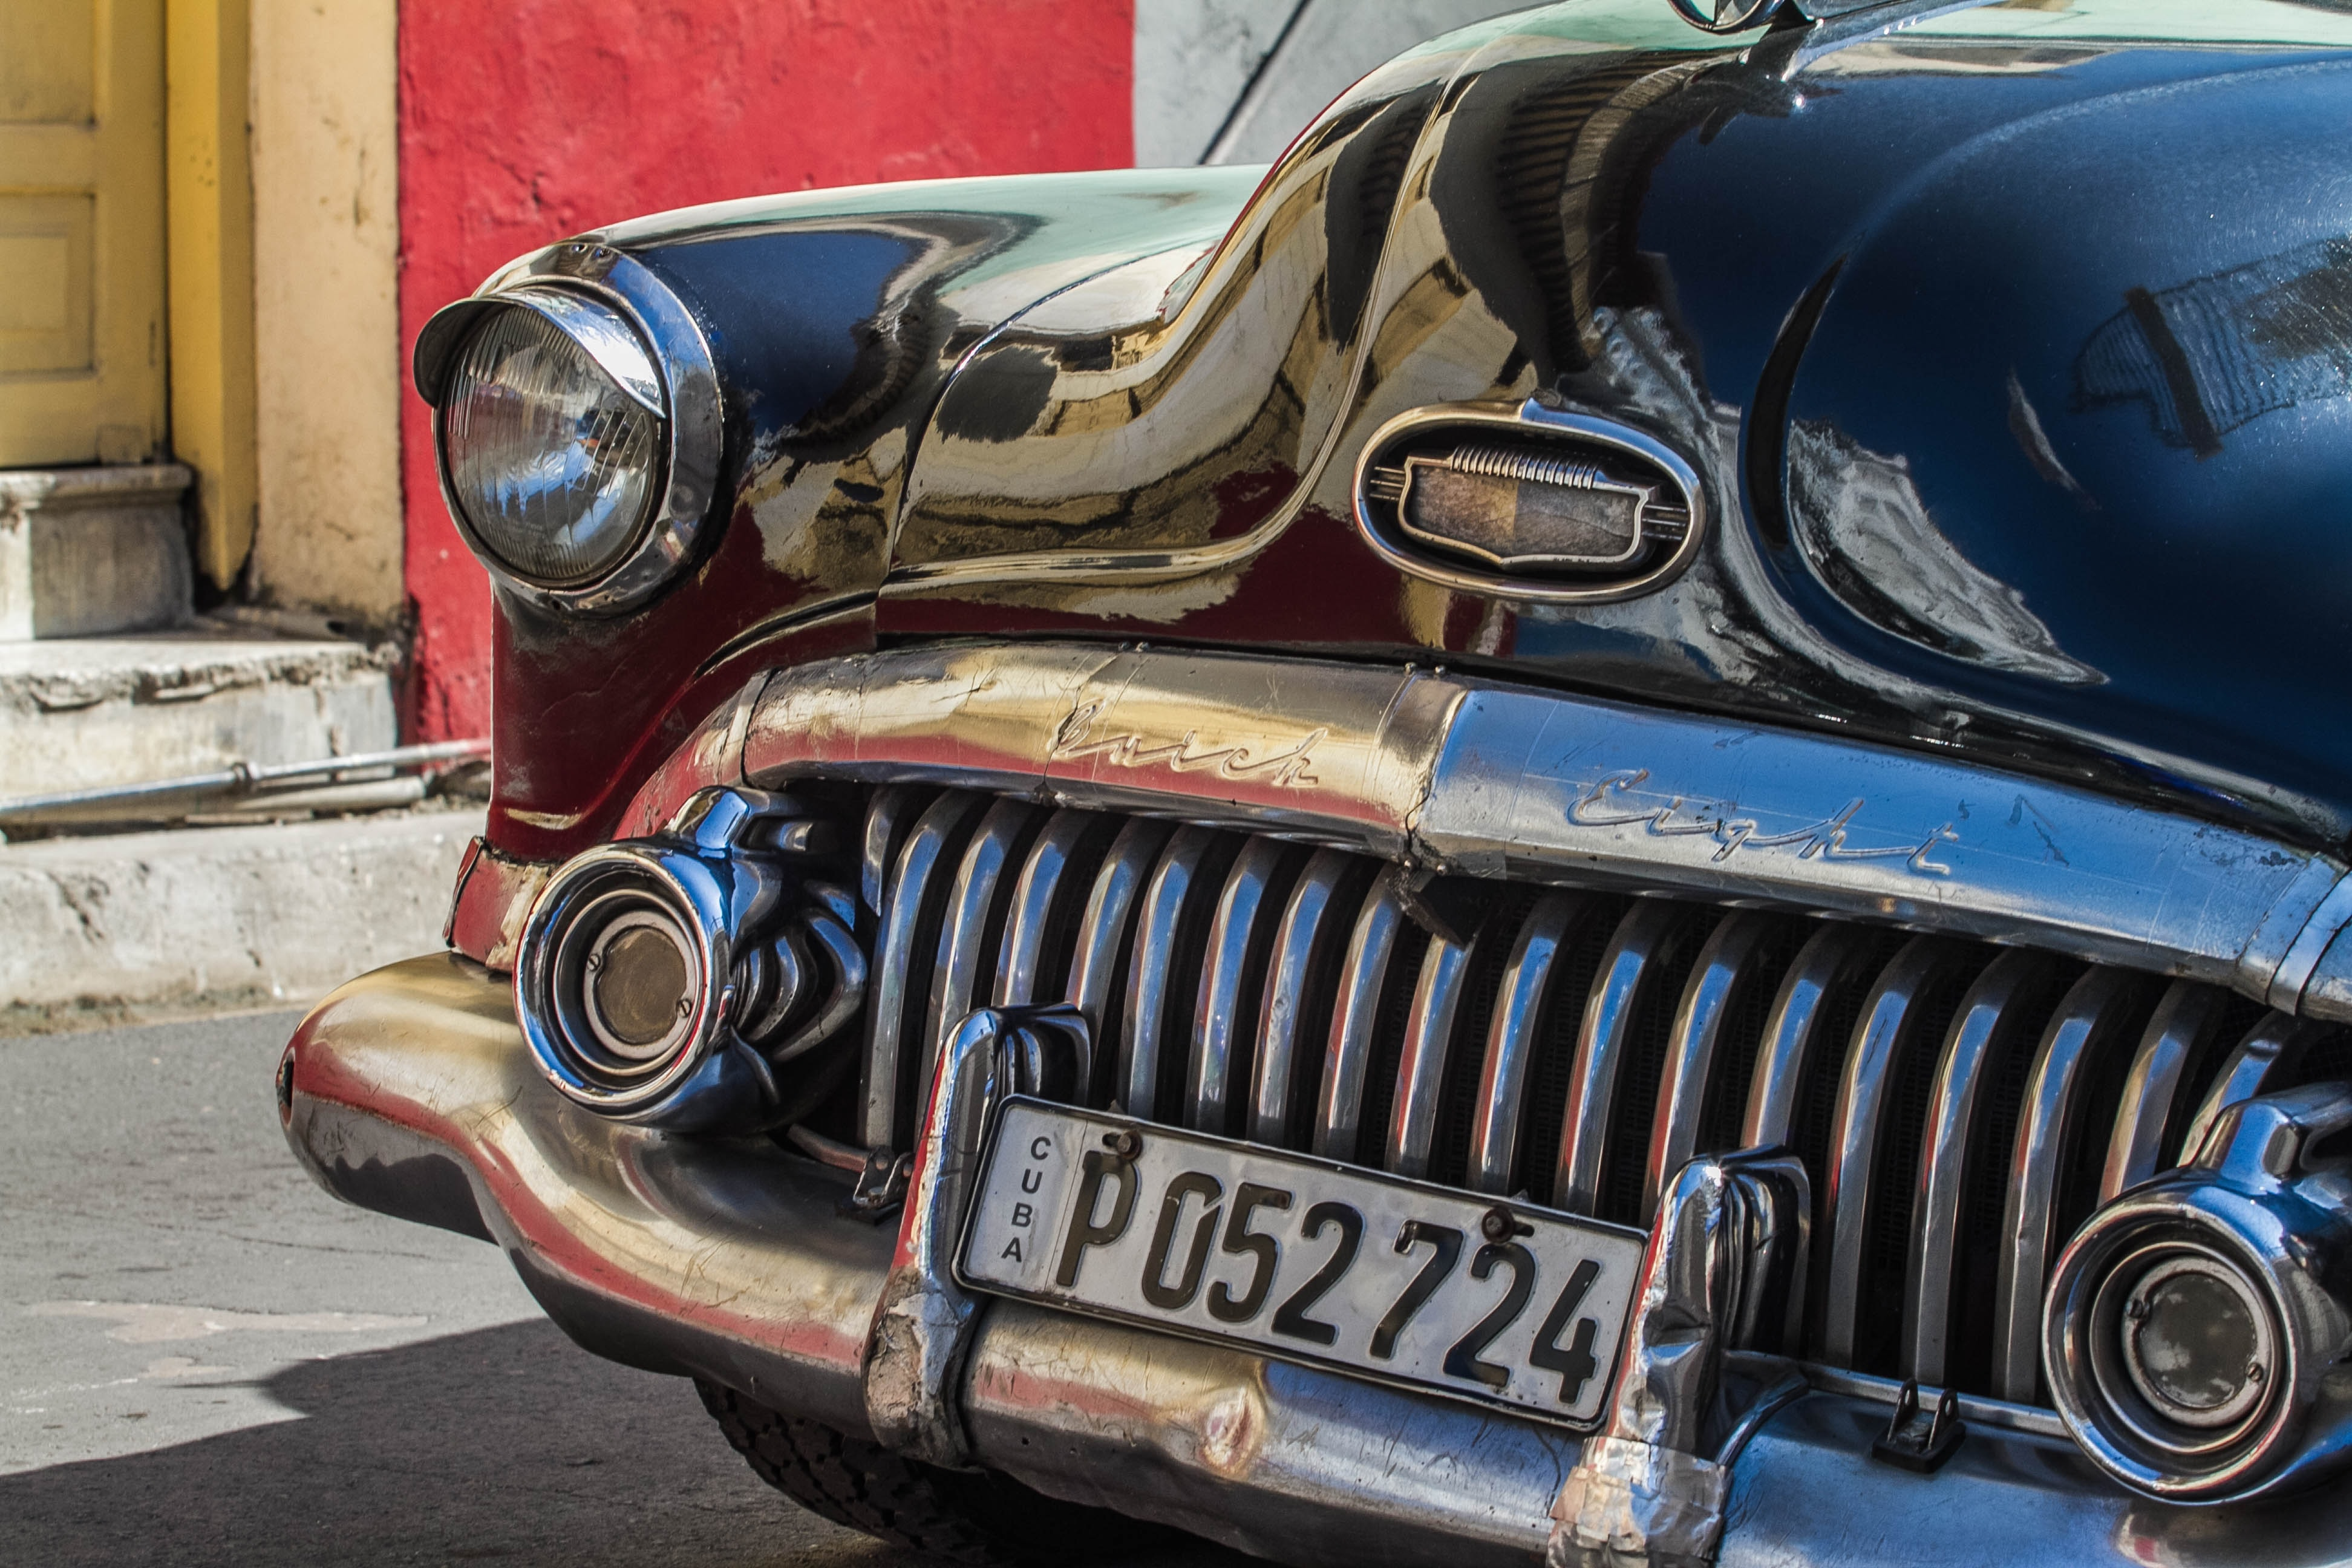 The grill of the vintage car parked in Santiago de Cuba.